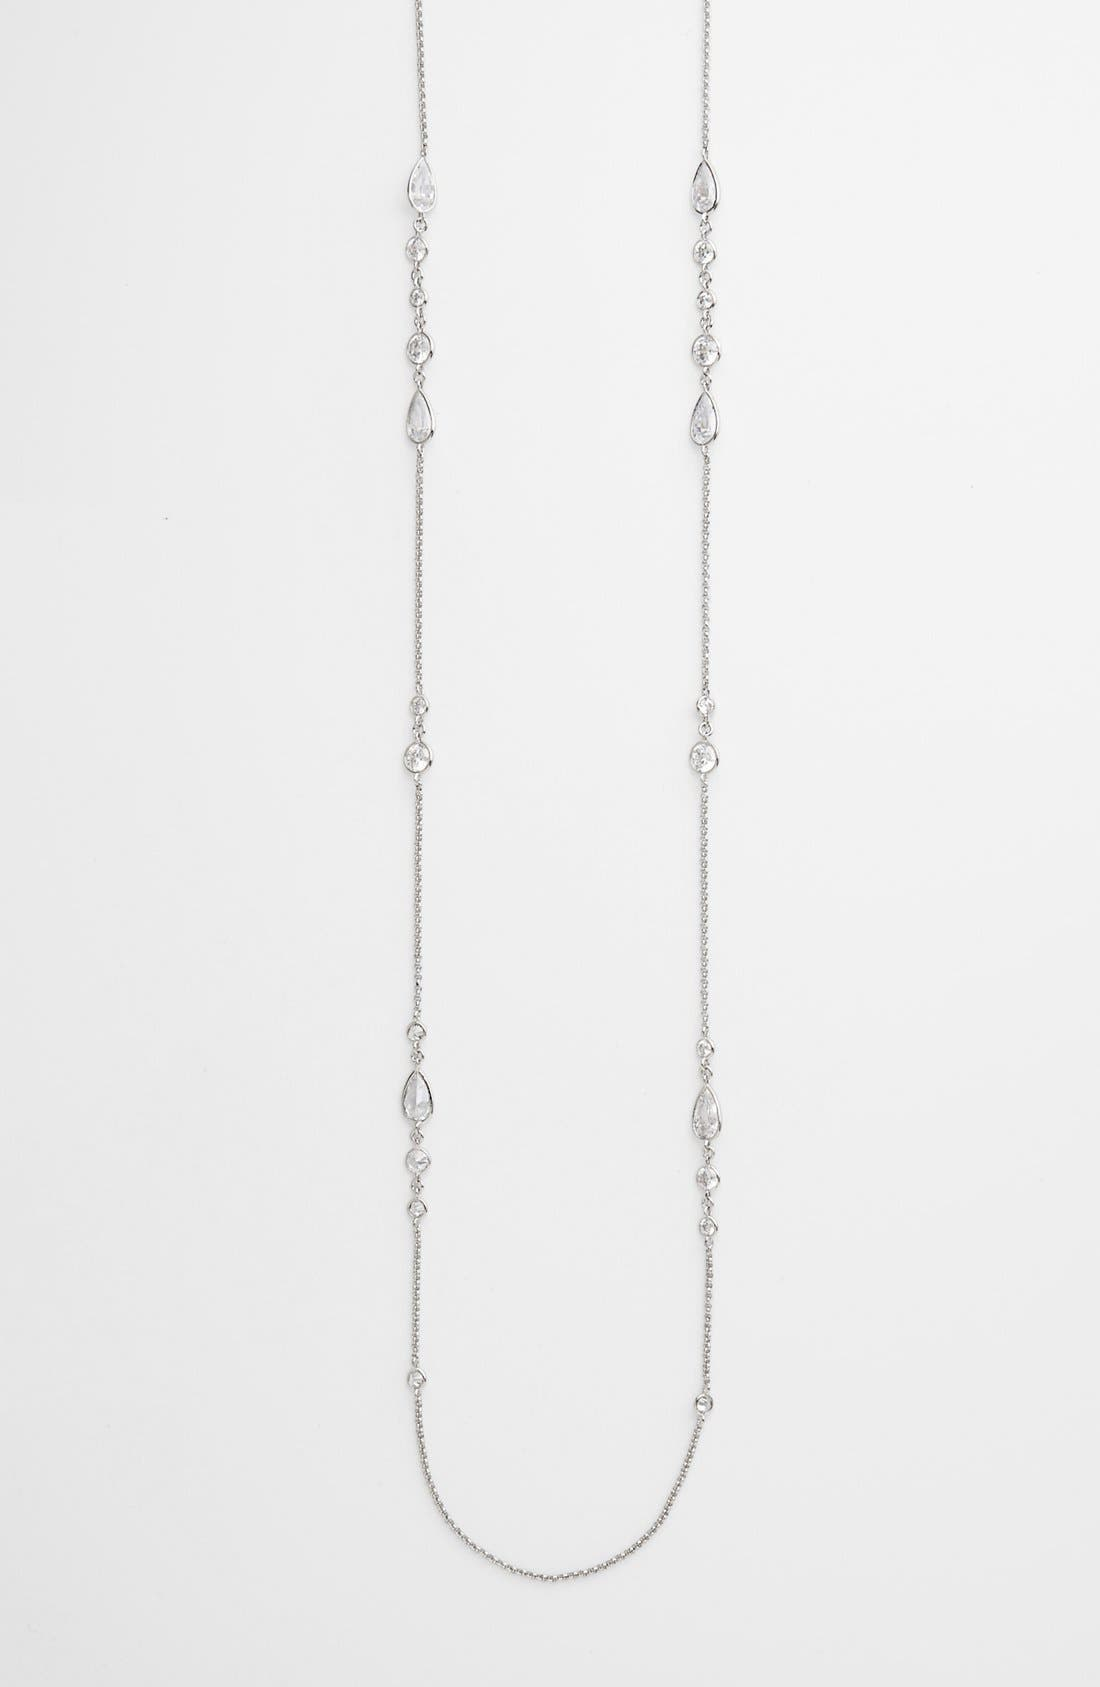 Alternate Image 1 Selected - Nadri Long Crystal Station Necklace (Nordstrom Exclusive)